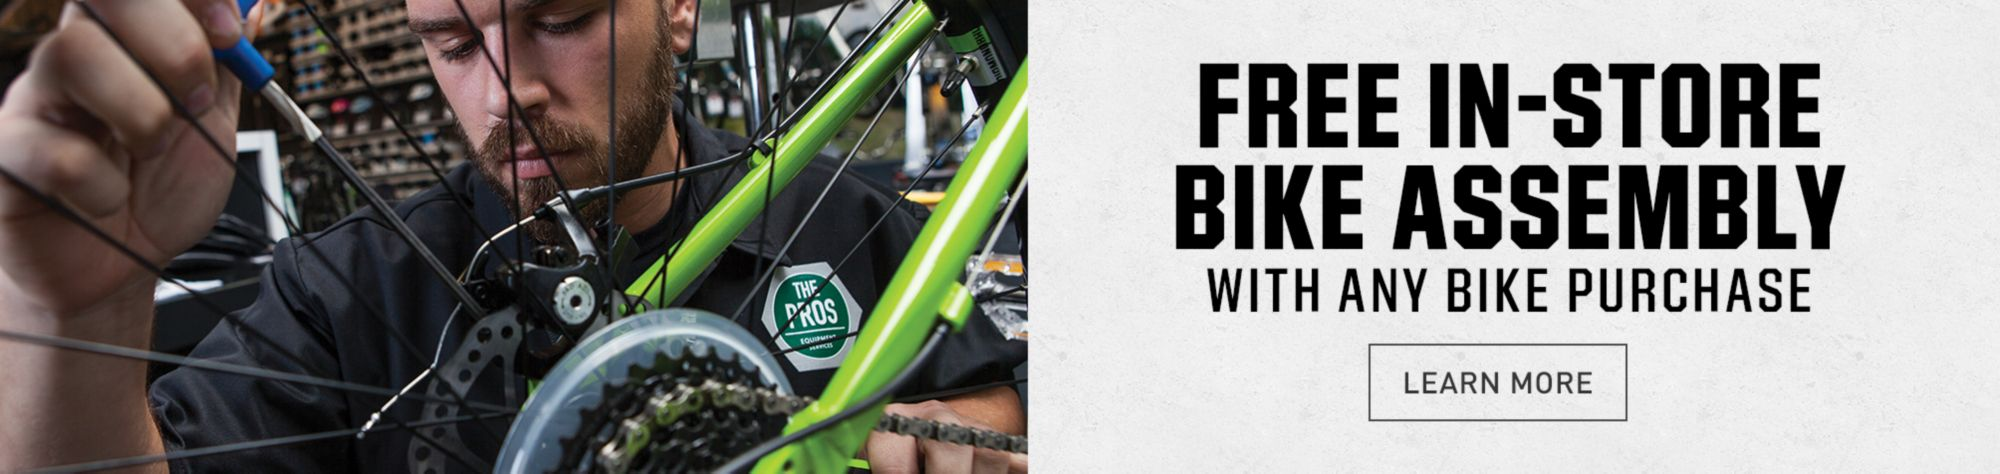 Free Bike Assembly In-Store With Any Bike Purchase - Learn More